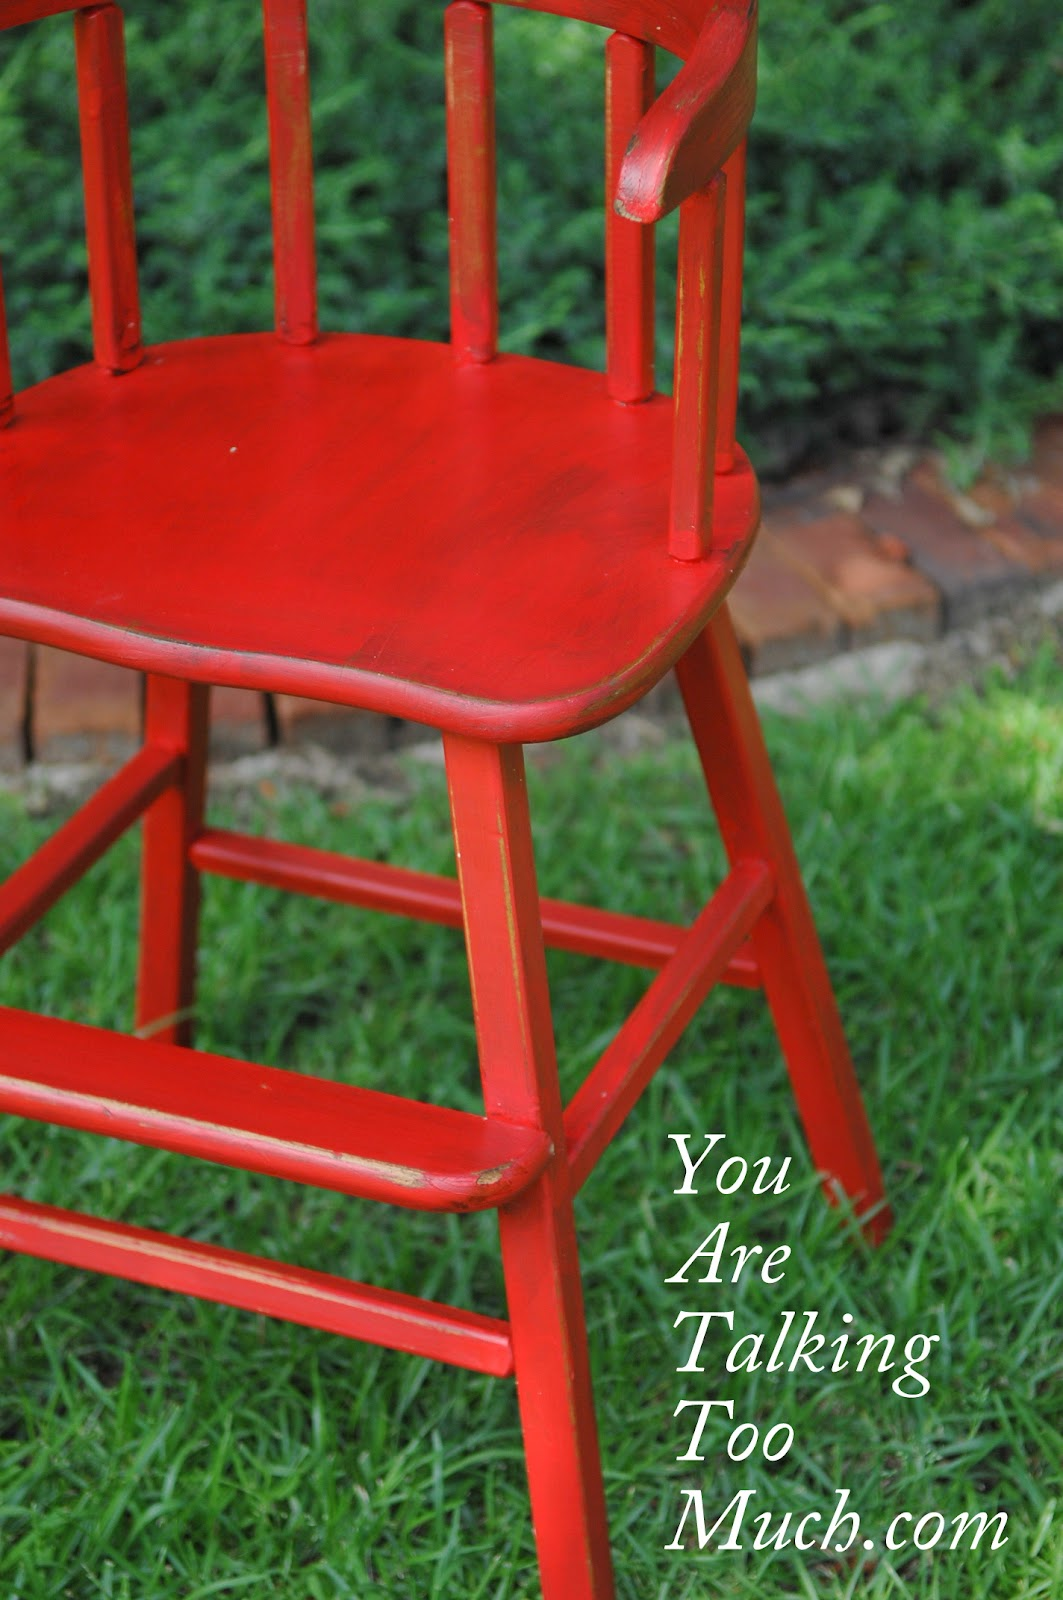 Red High Chair The Quotnot So Perfect Quot Red High Chair You Are Talking Too Much